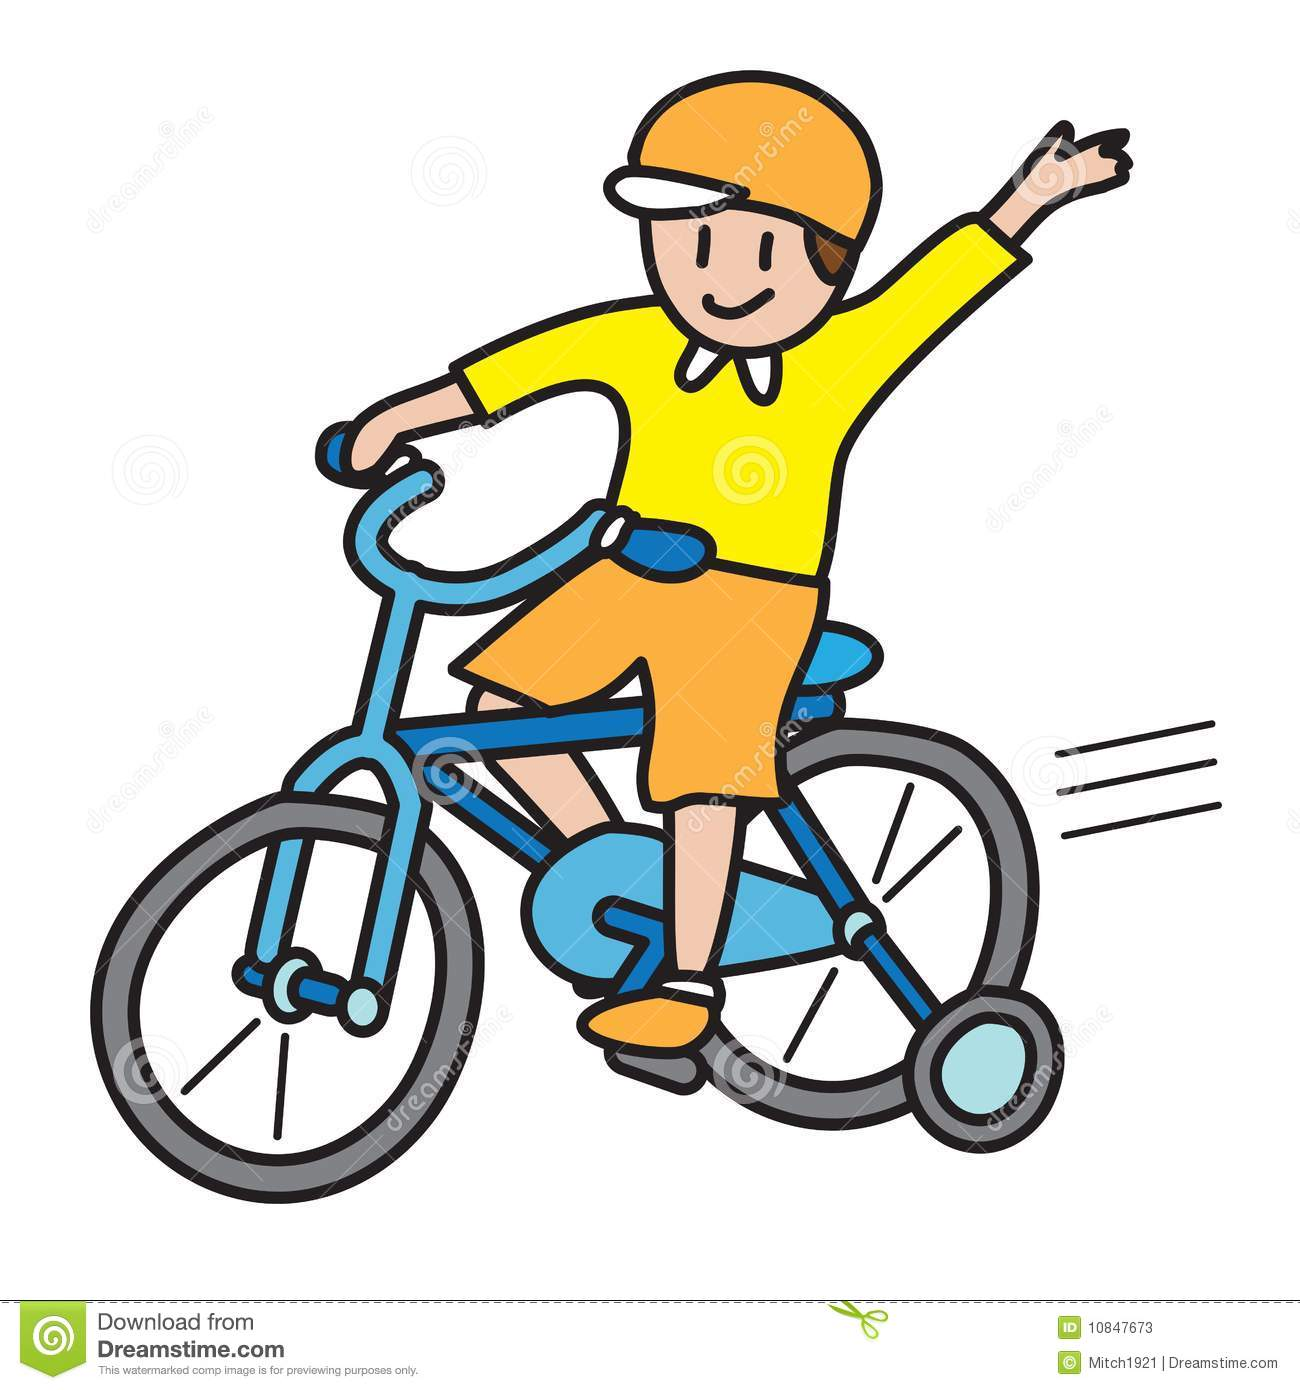 Guy riding bicycle and makes it to finish line clipart banner stock Kid Riding Bike | Free download best Kid Riding Bike on ClipArtMag.com banner stock